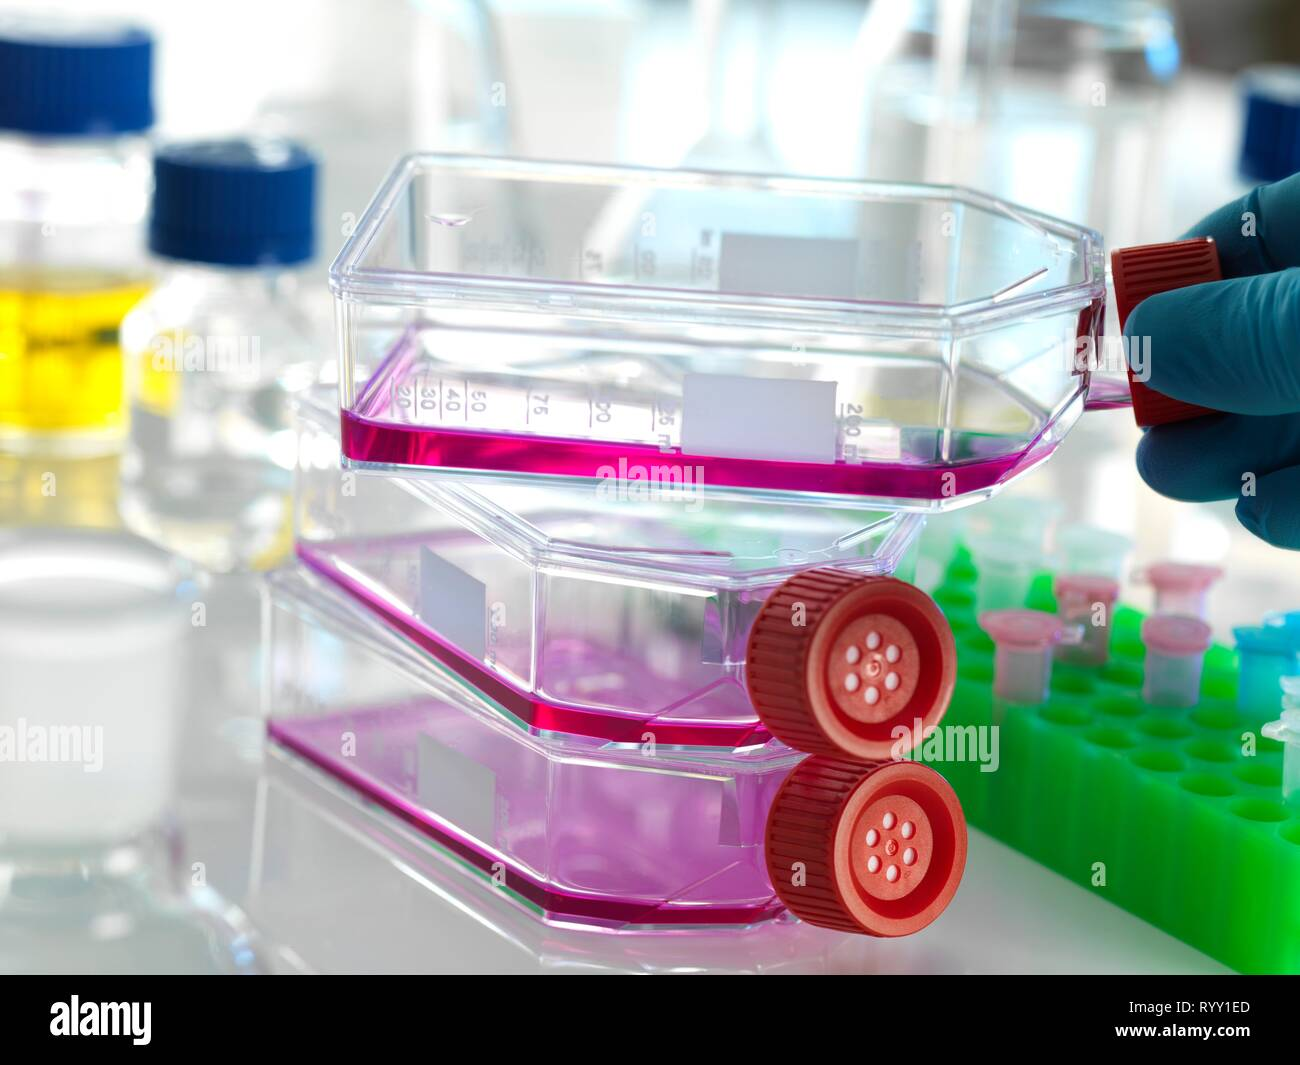 Flask containing stem cells, cultivated in red growth medium in the laboratory. - Stock Image